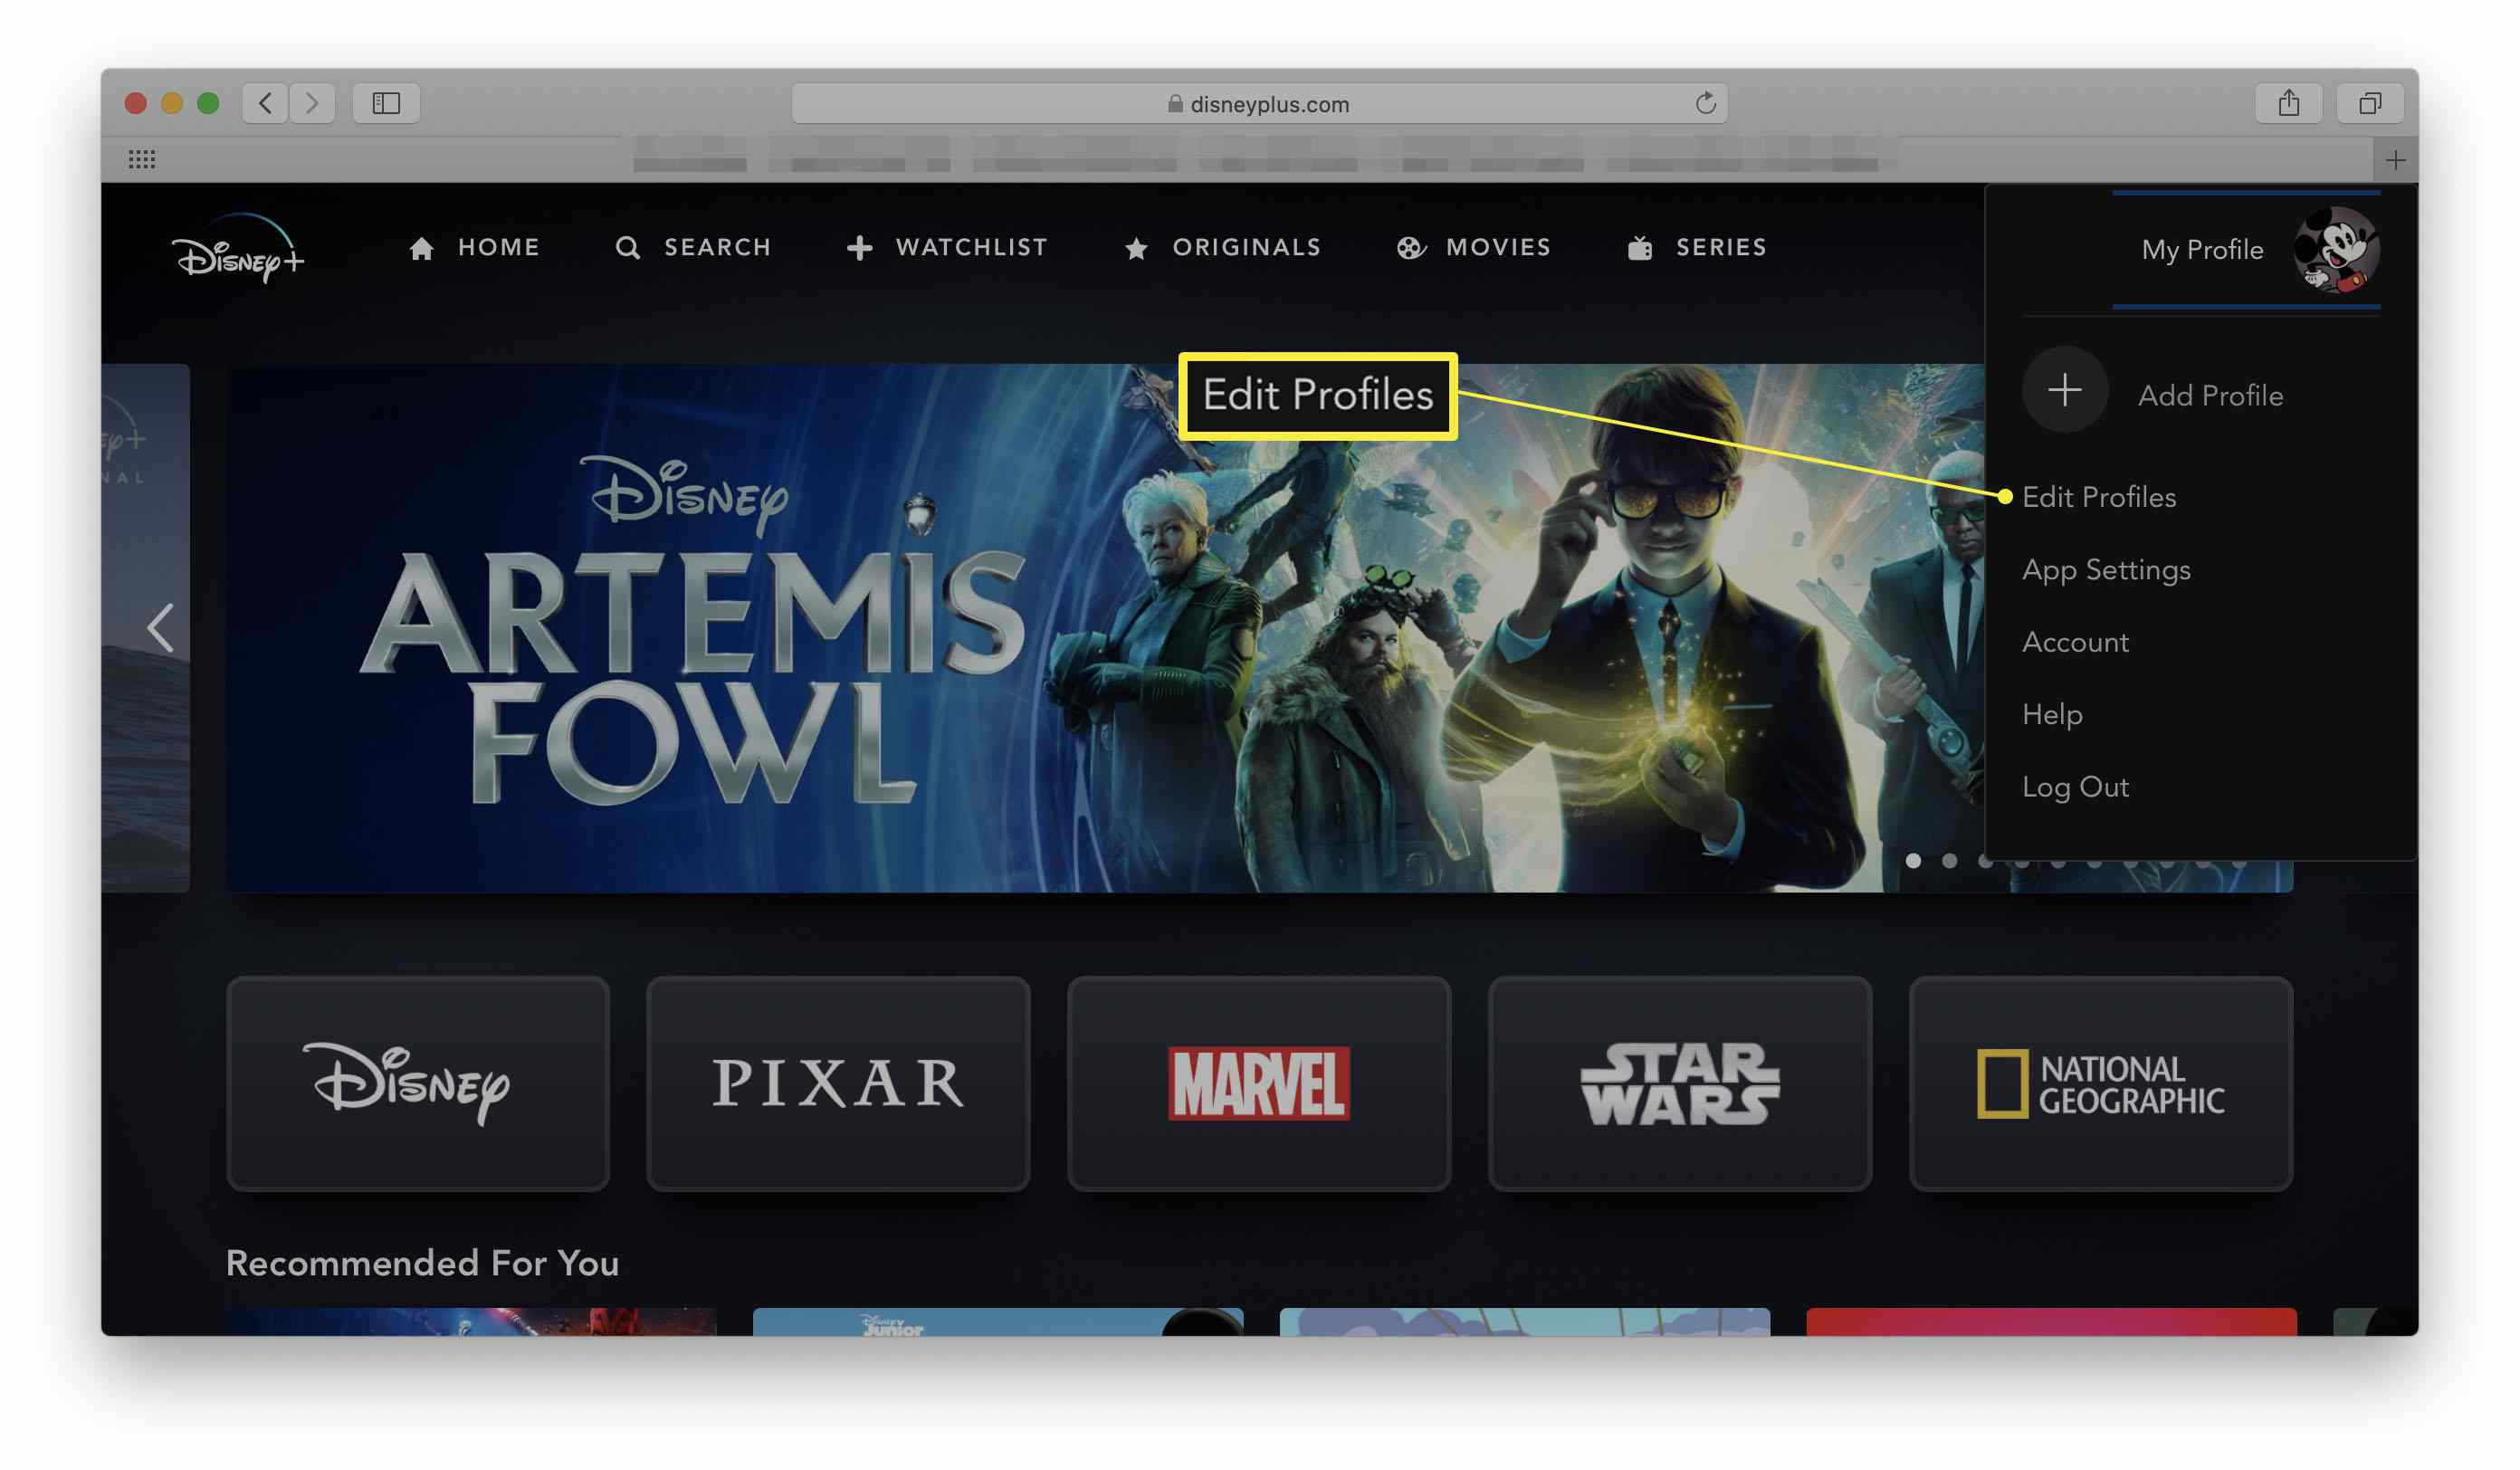 Disney+ with the Edit Profiles dialog highlighted